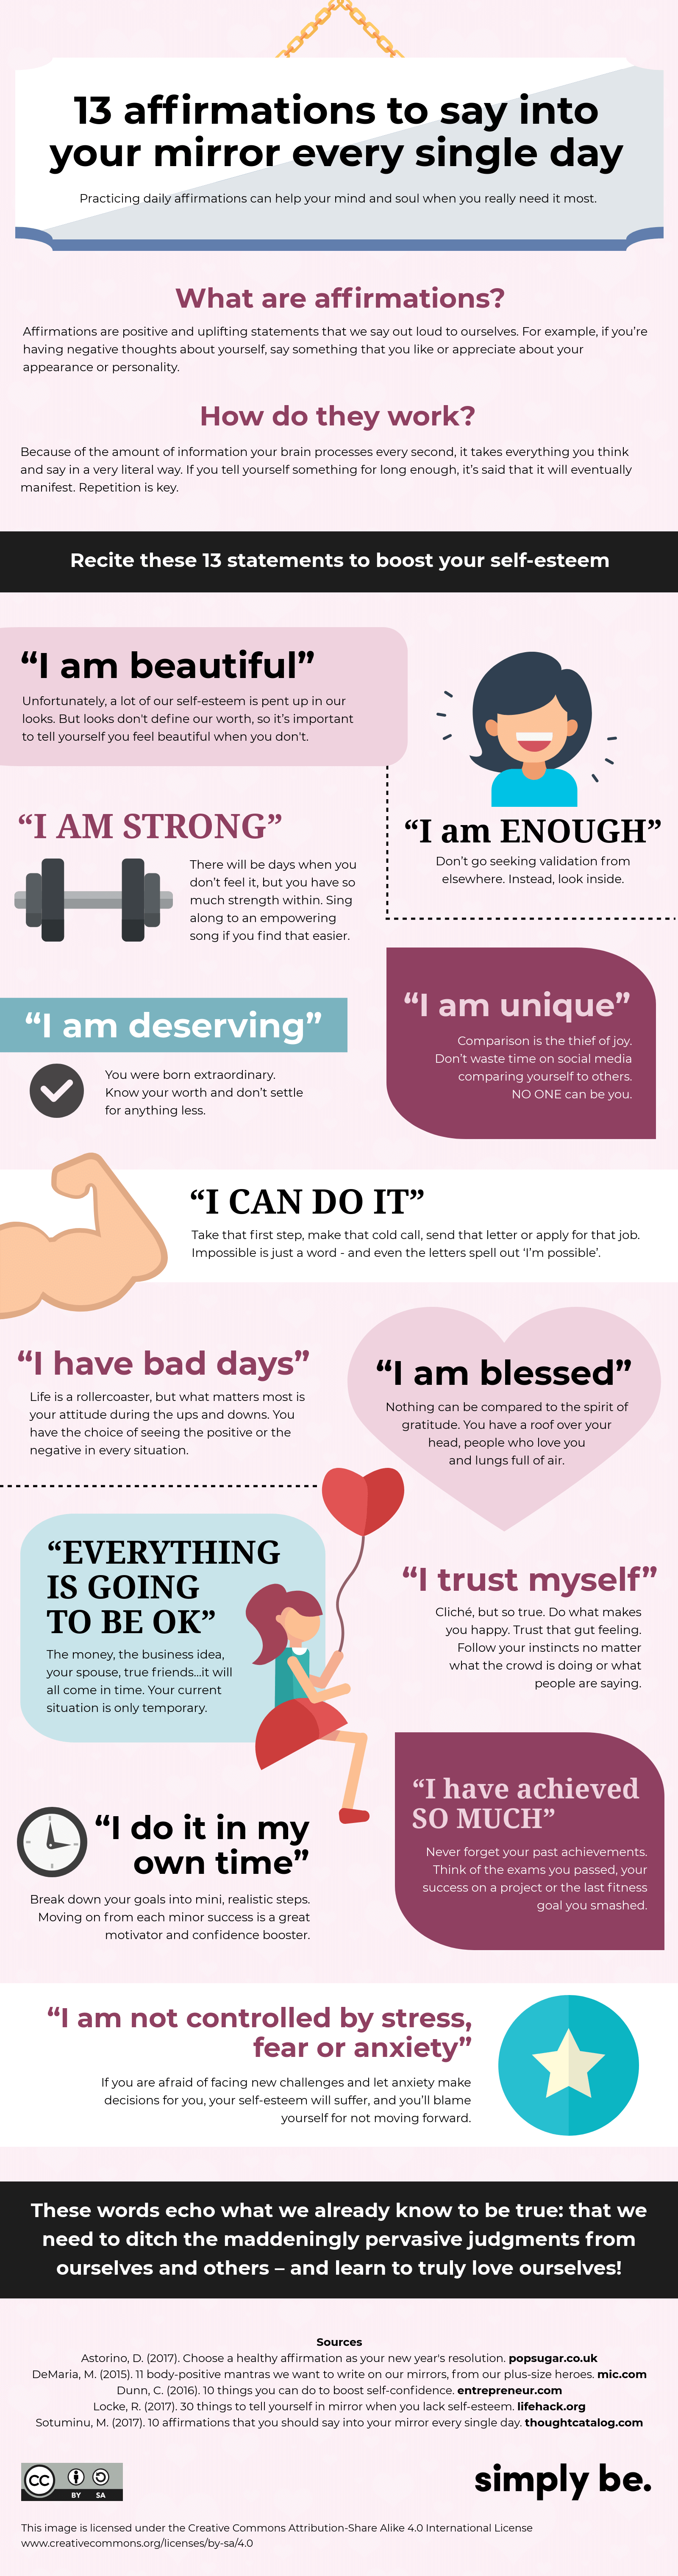 13 affirmations to say into your mirror every single day